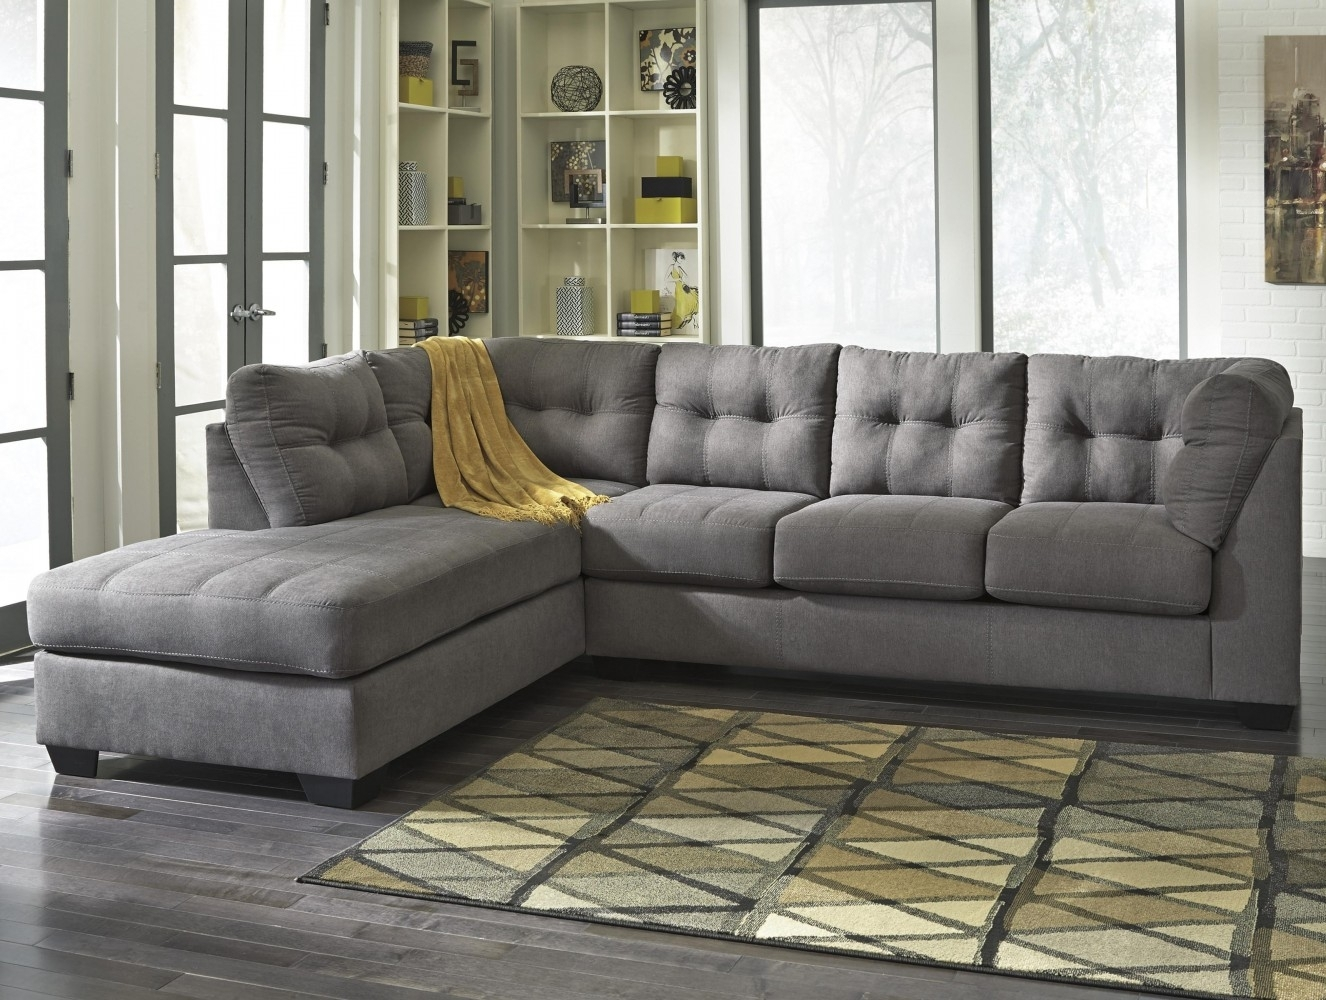 2 Piece Sectional Sofa Canada | Baci Living Room Intended For Josephine 2 Piece Sectionals With Raf Sofa (View 7 of 25)